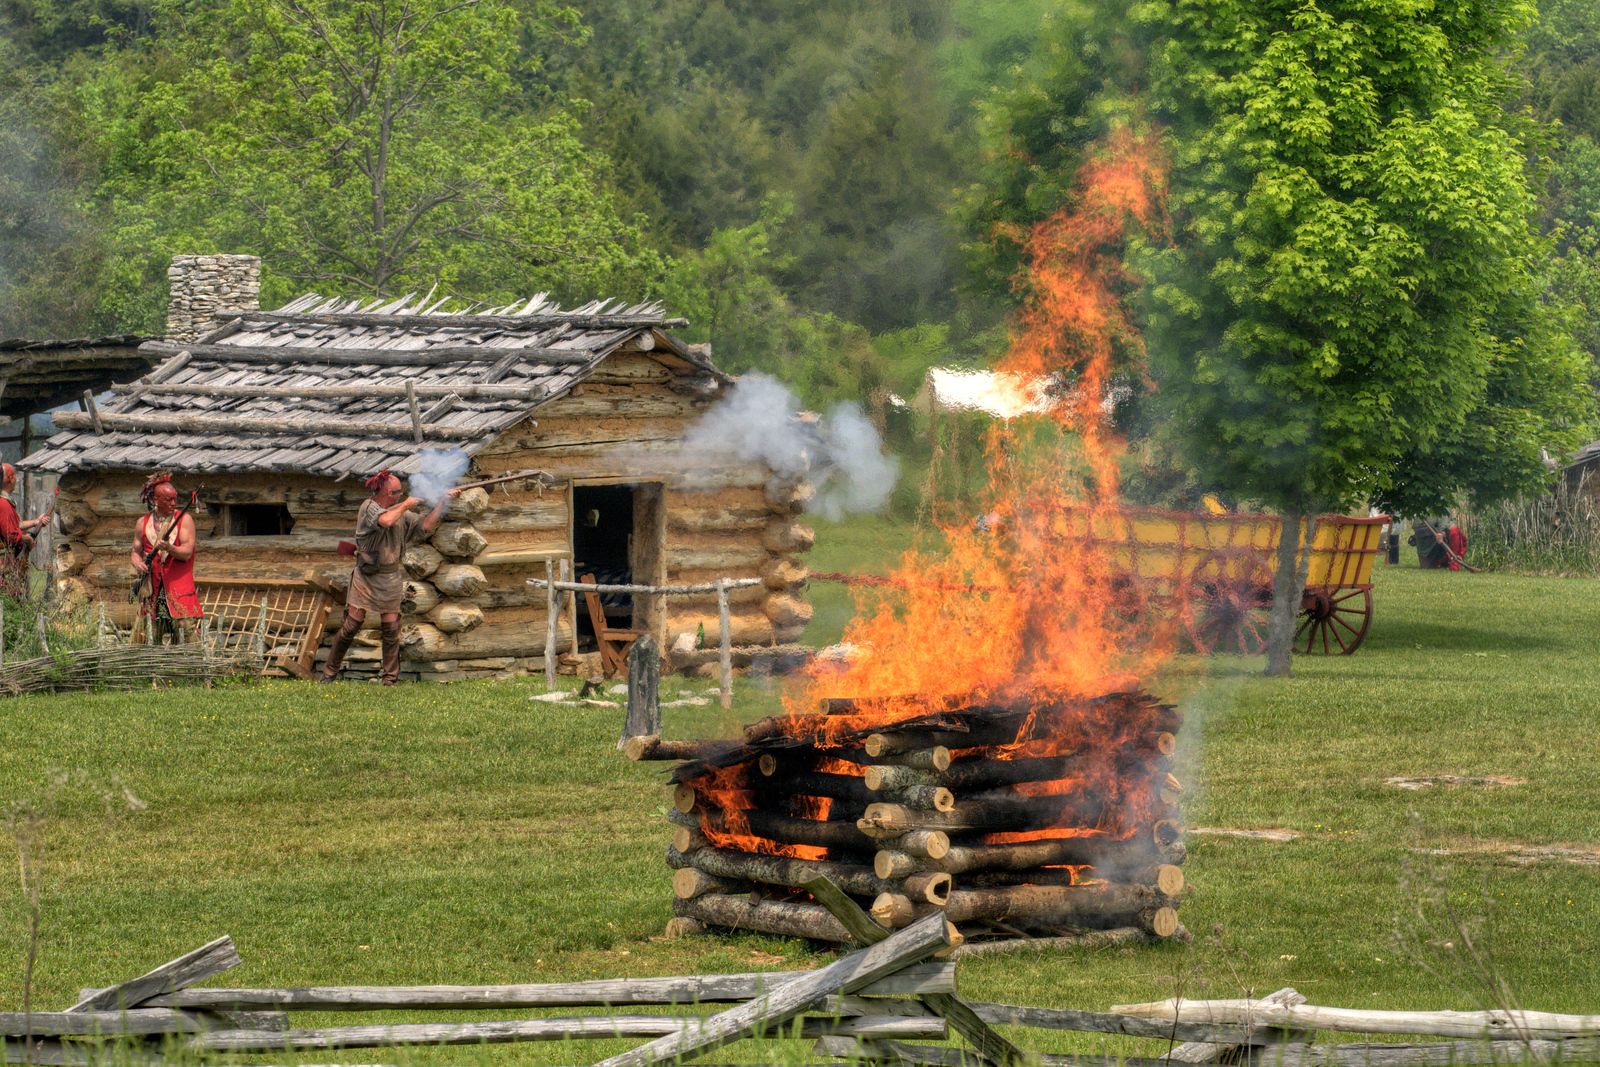 A fire burns during the raid at the 15th Annual Raid at Martin's Station at Wilderness Road State Park in Ewing, VA on Saturday, May 9, 2015. Copyright 2015 Jason Barnette